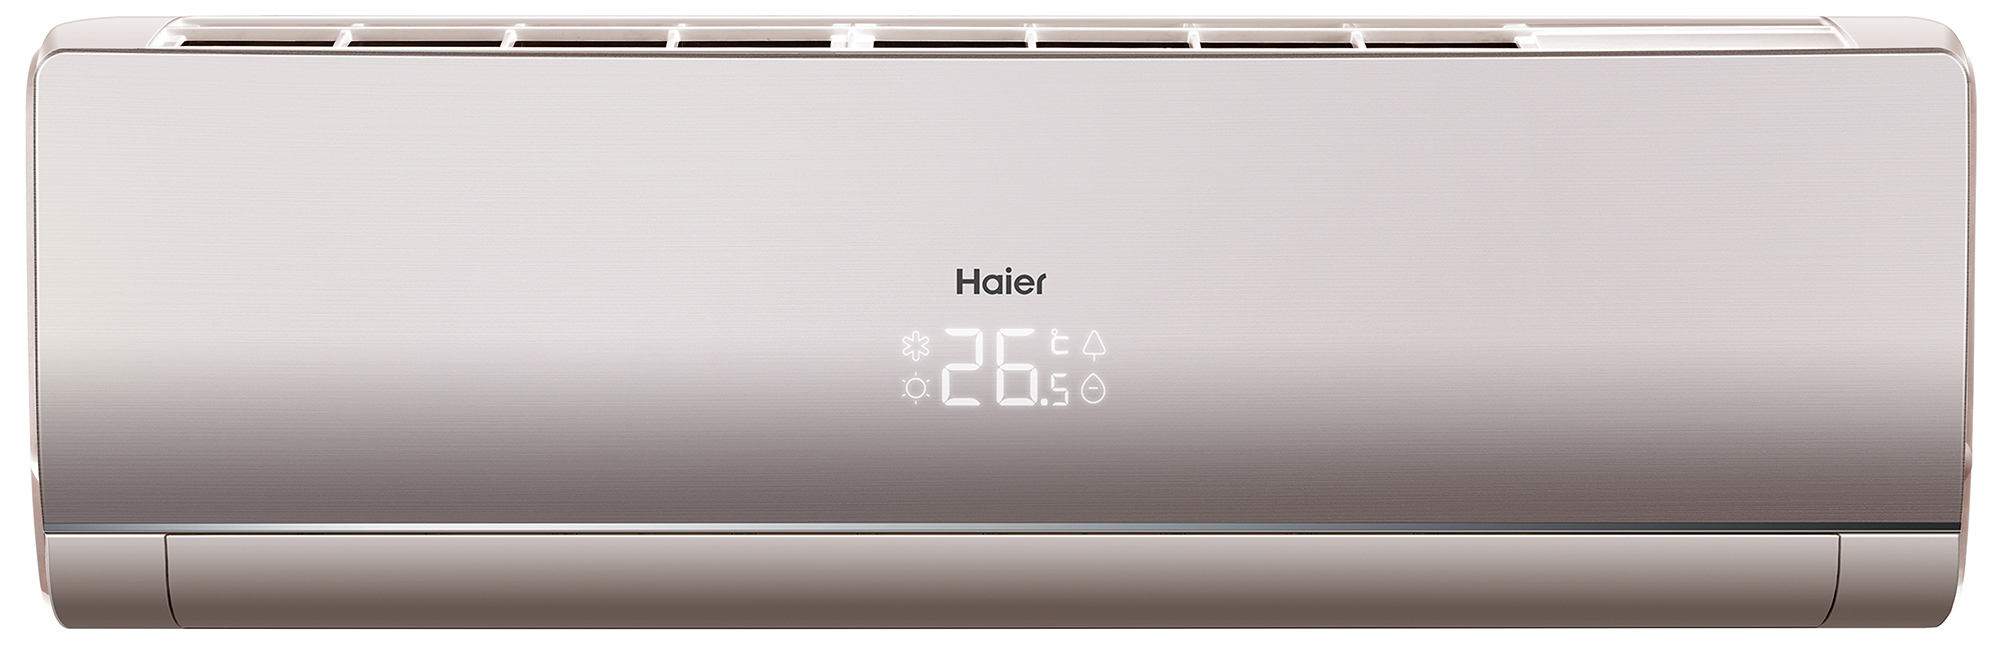 1. Haier сплит-система настенный AS18NS4ERA-G/1U18FS2ERA (серия Lightera DC-Inverter)